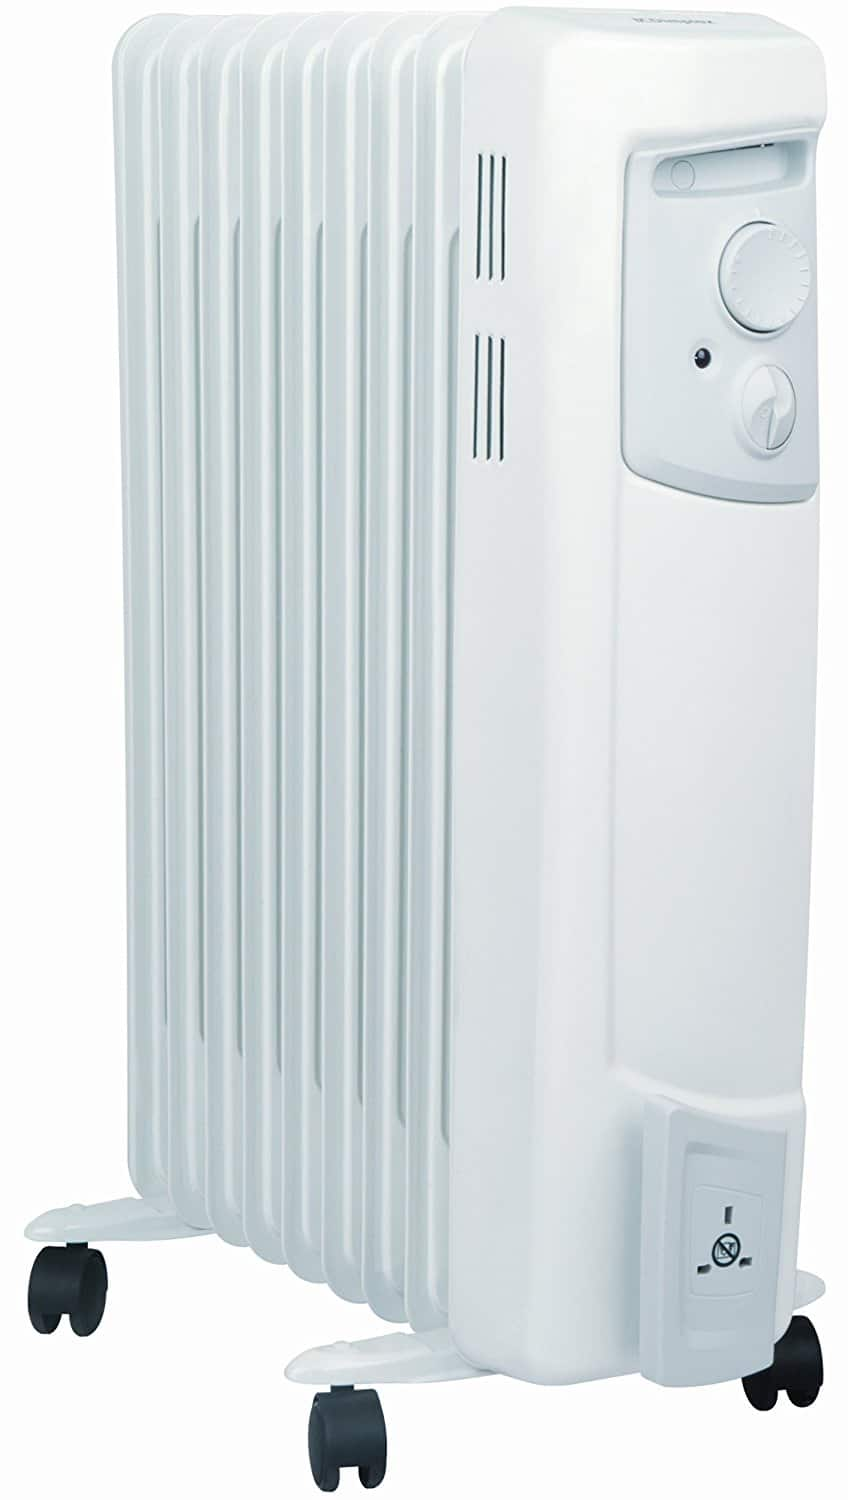 Dimplex 2 KW Electric Oil Filled Column Radiator